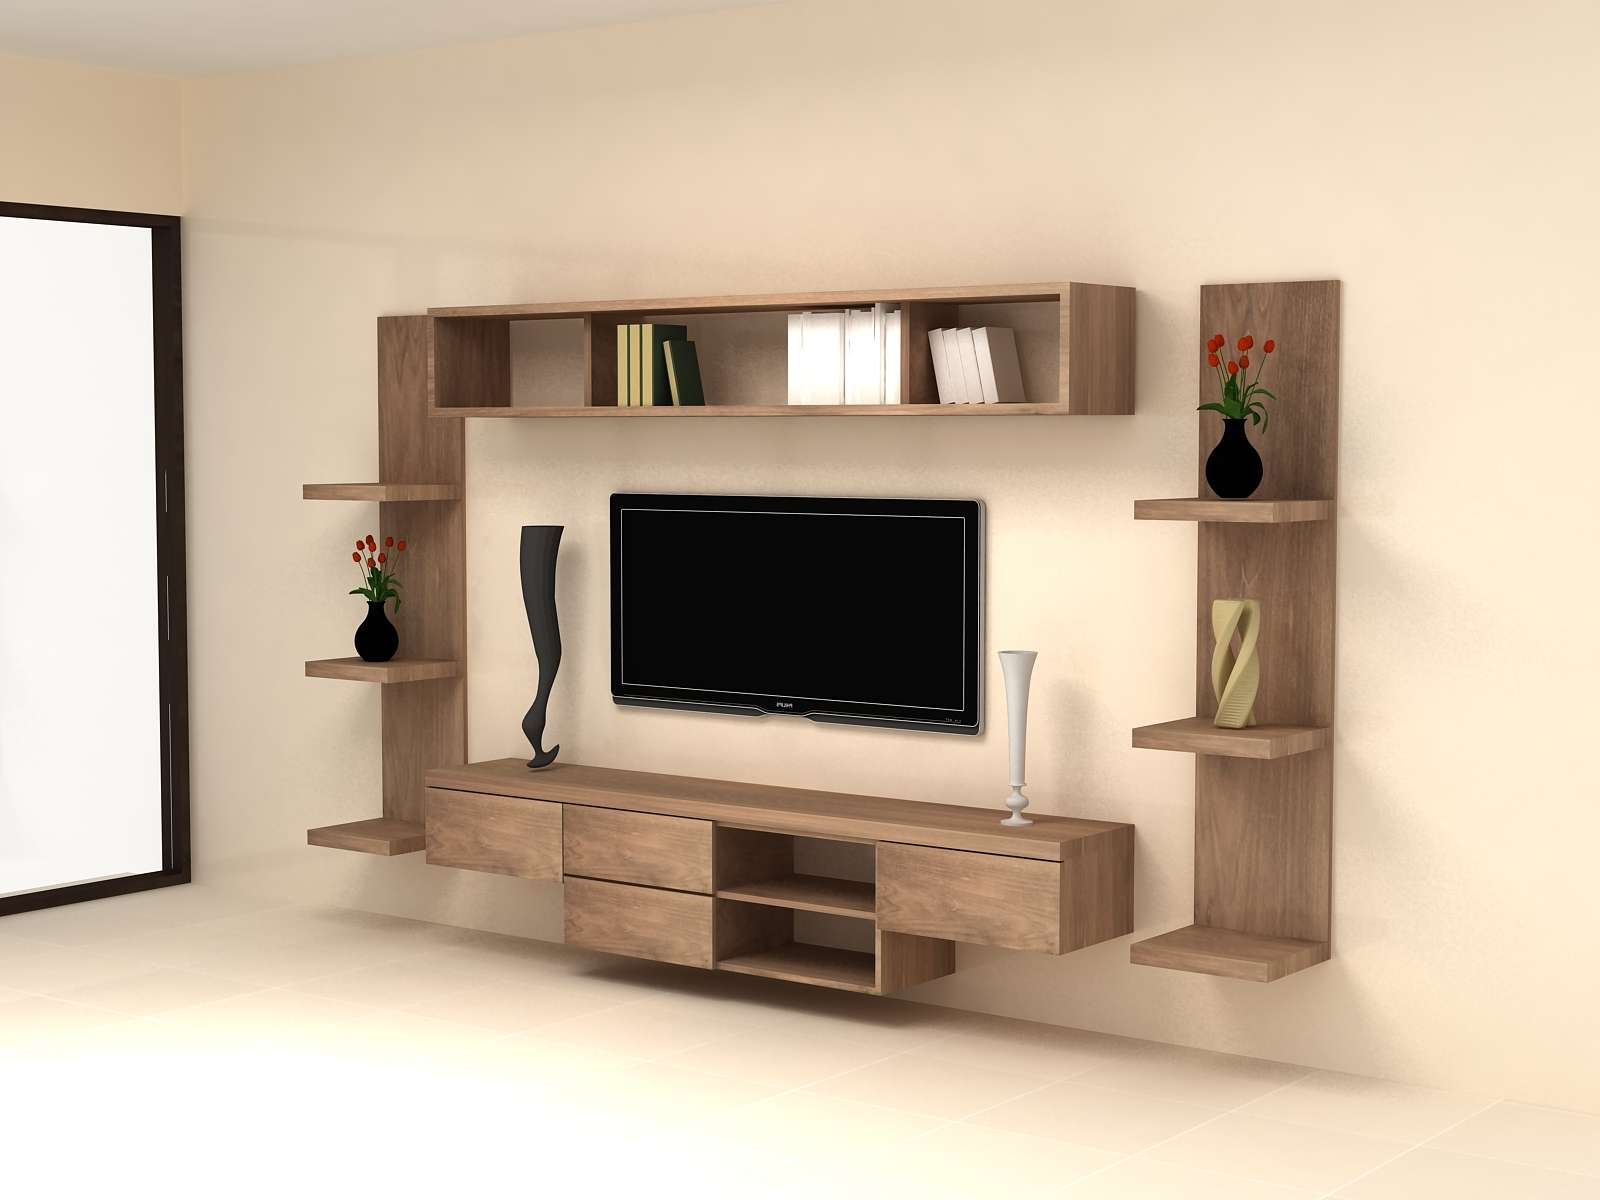 the modern bedroom displaying gallery of modern tv cabinets designs view 14 13517